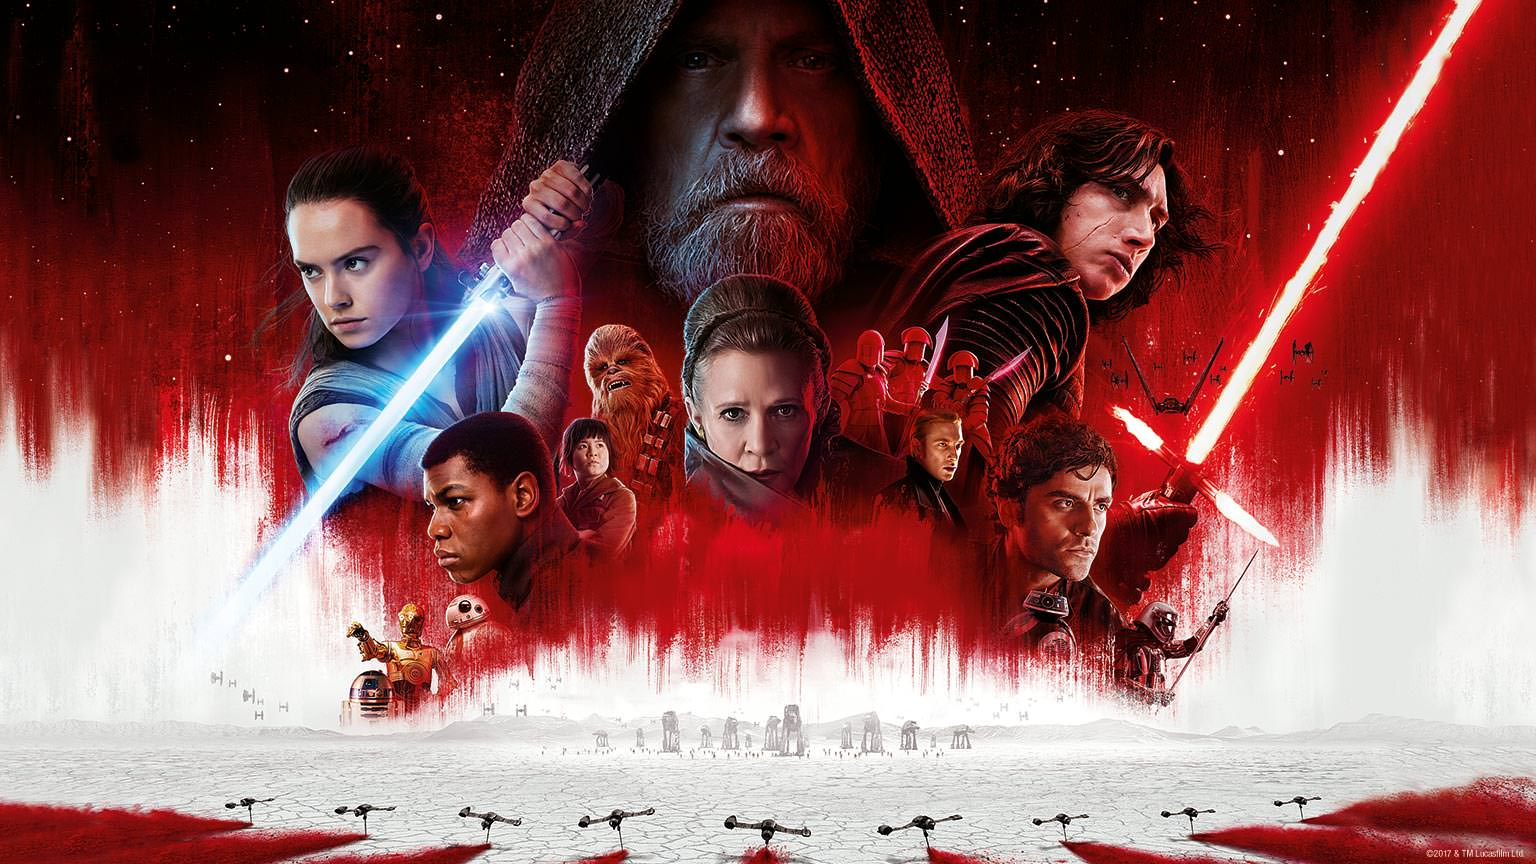 Star Wars: The Last Jedi In Theaters Now